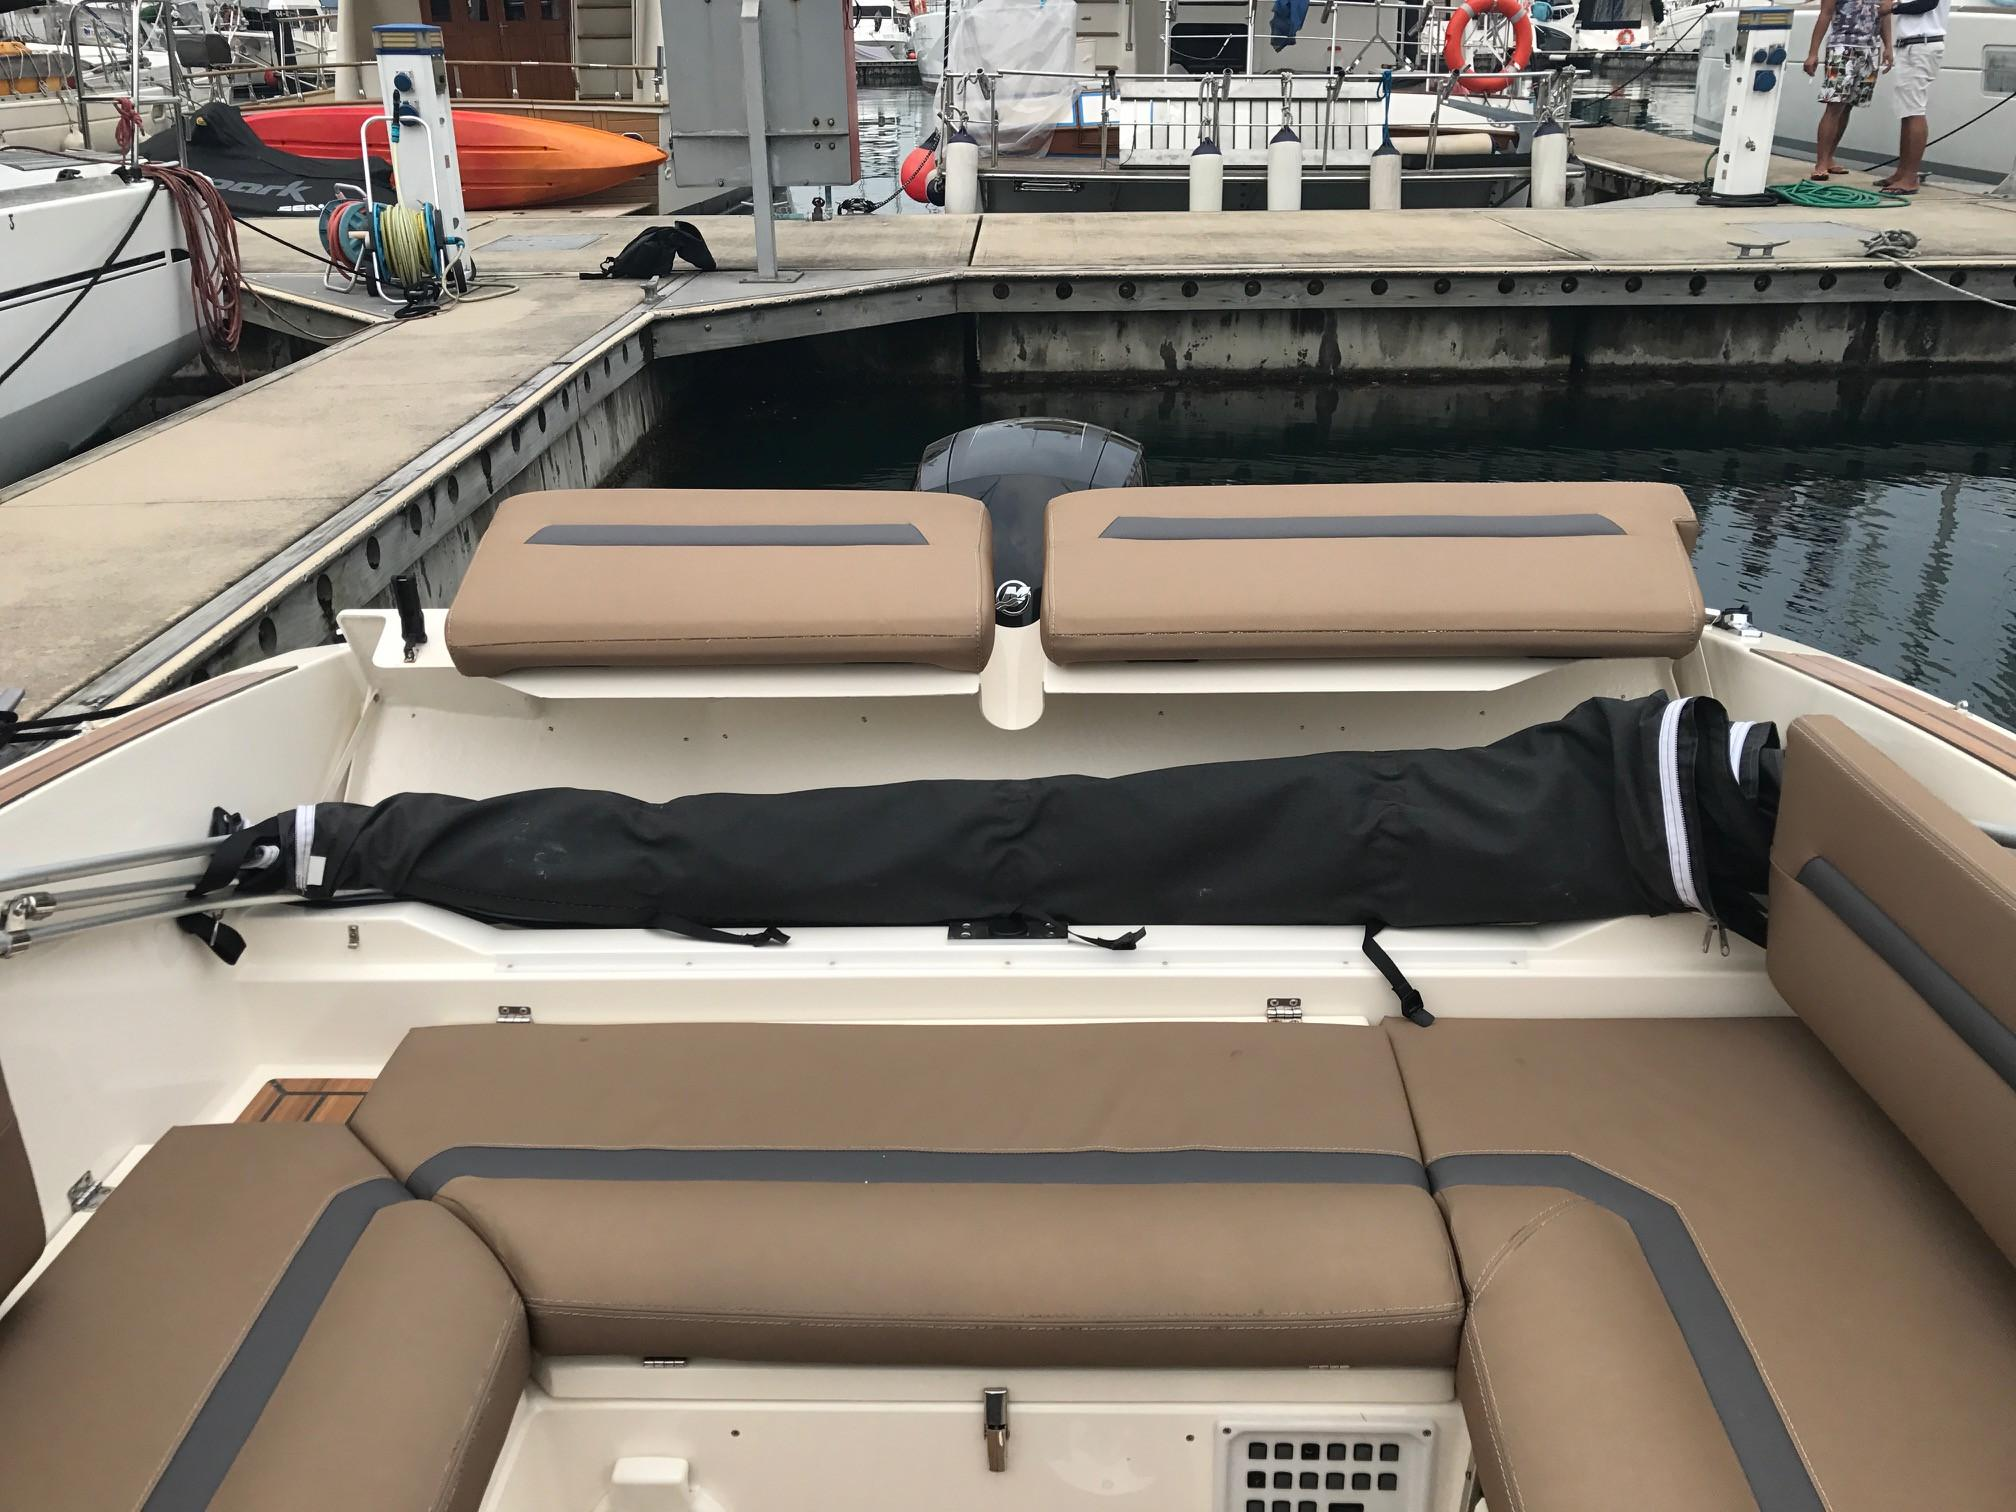 Backrest moves to access Bimini